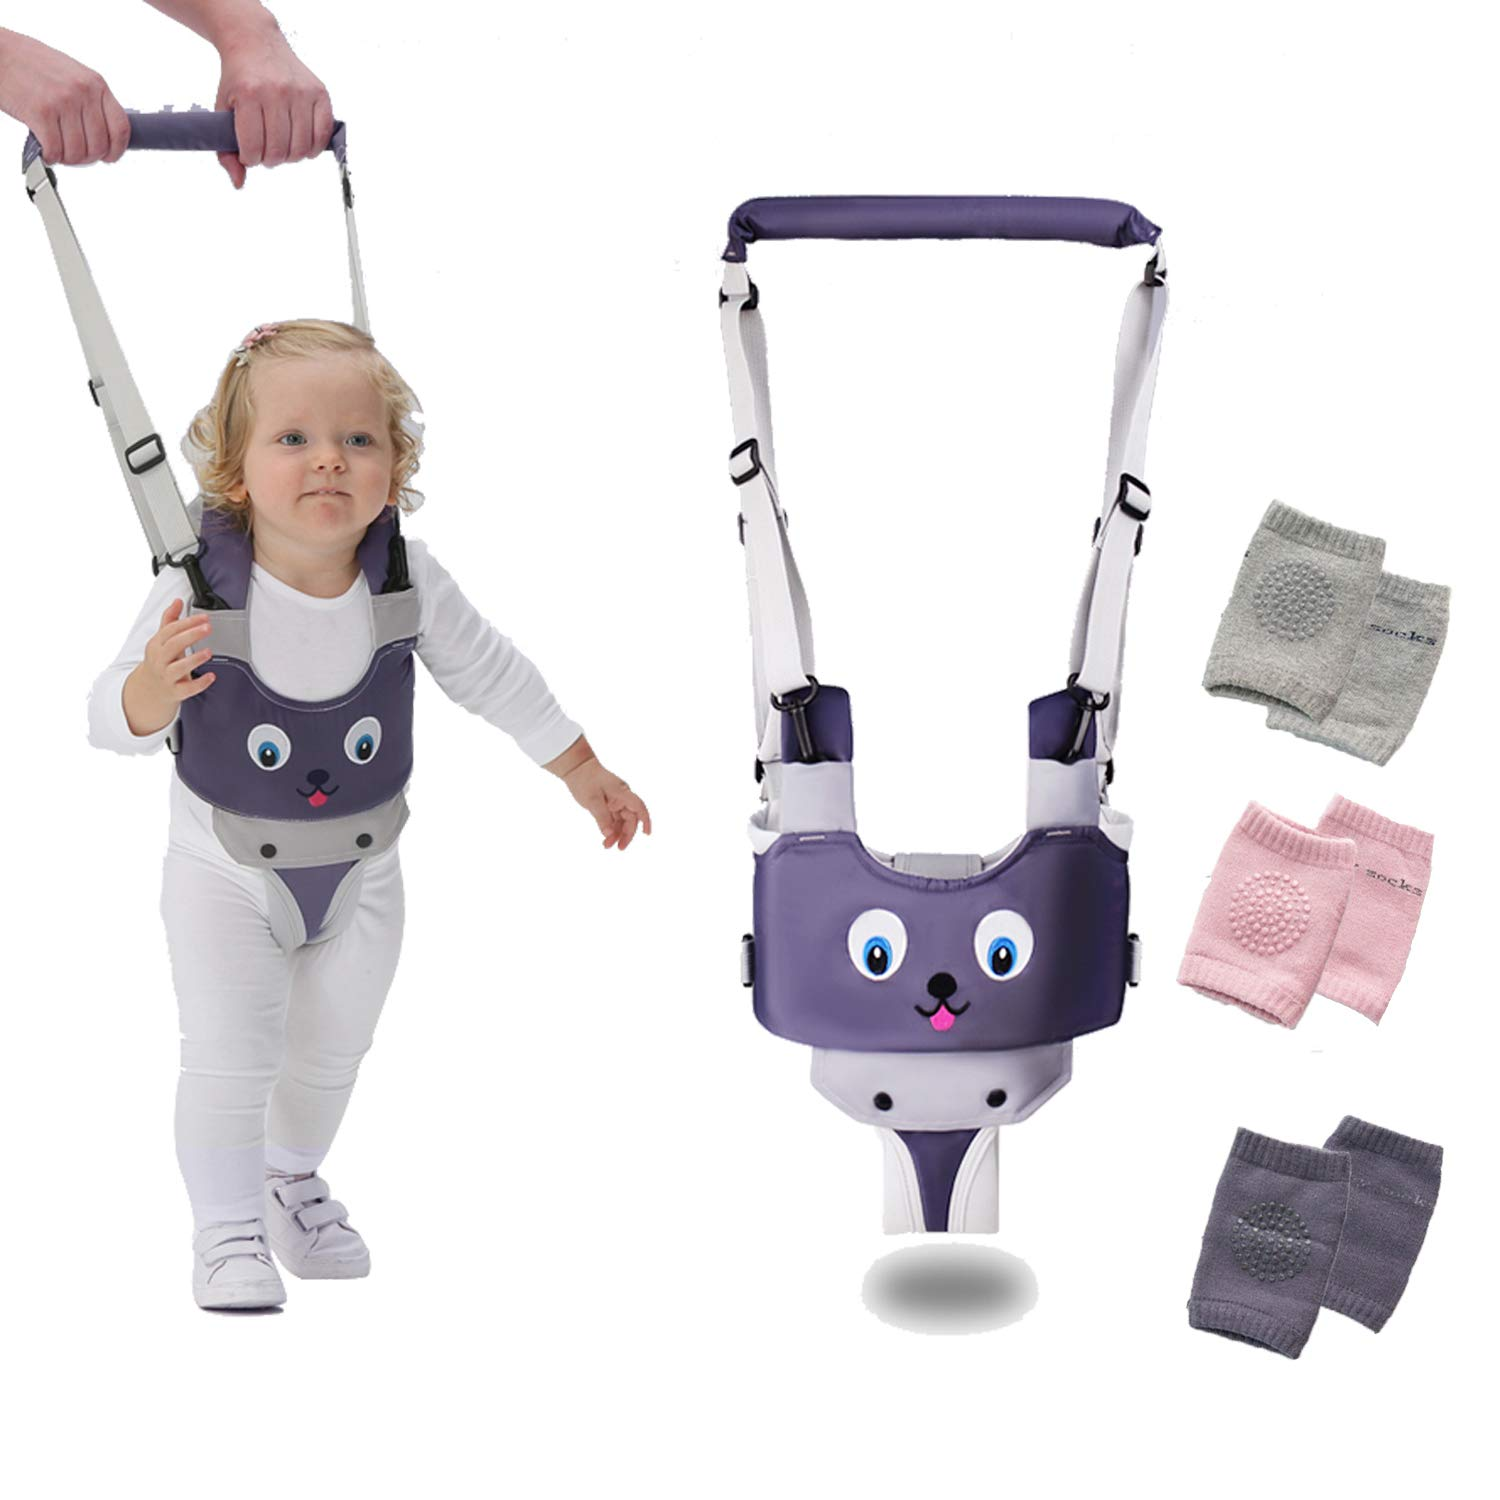 Baby Walking Harness, Adjustable Handheld Kids Walker Helper Toddler Infant Walker Harness Assistant Belt, Made of Breathable Knitted Fabric Layers,with 3pcs Baby Crawling Knee Pads